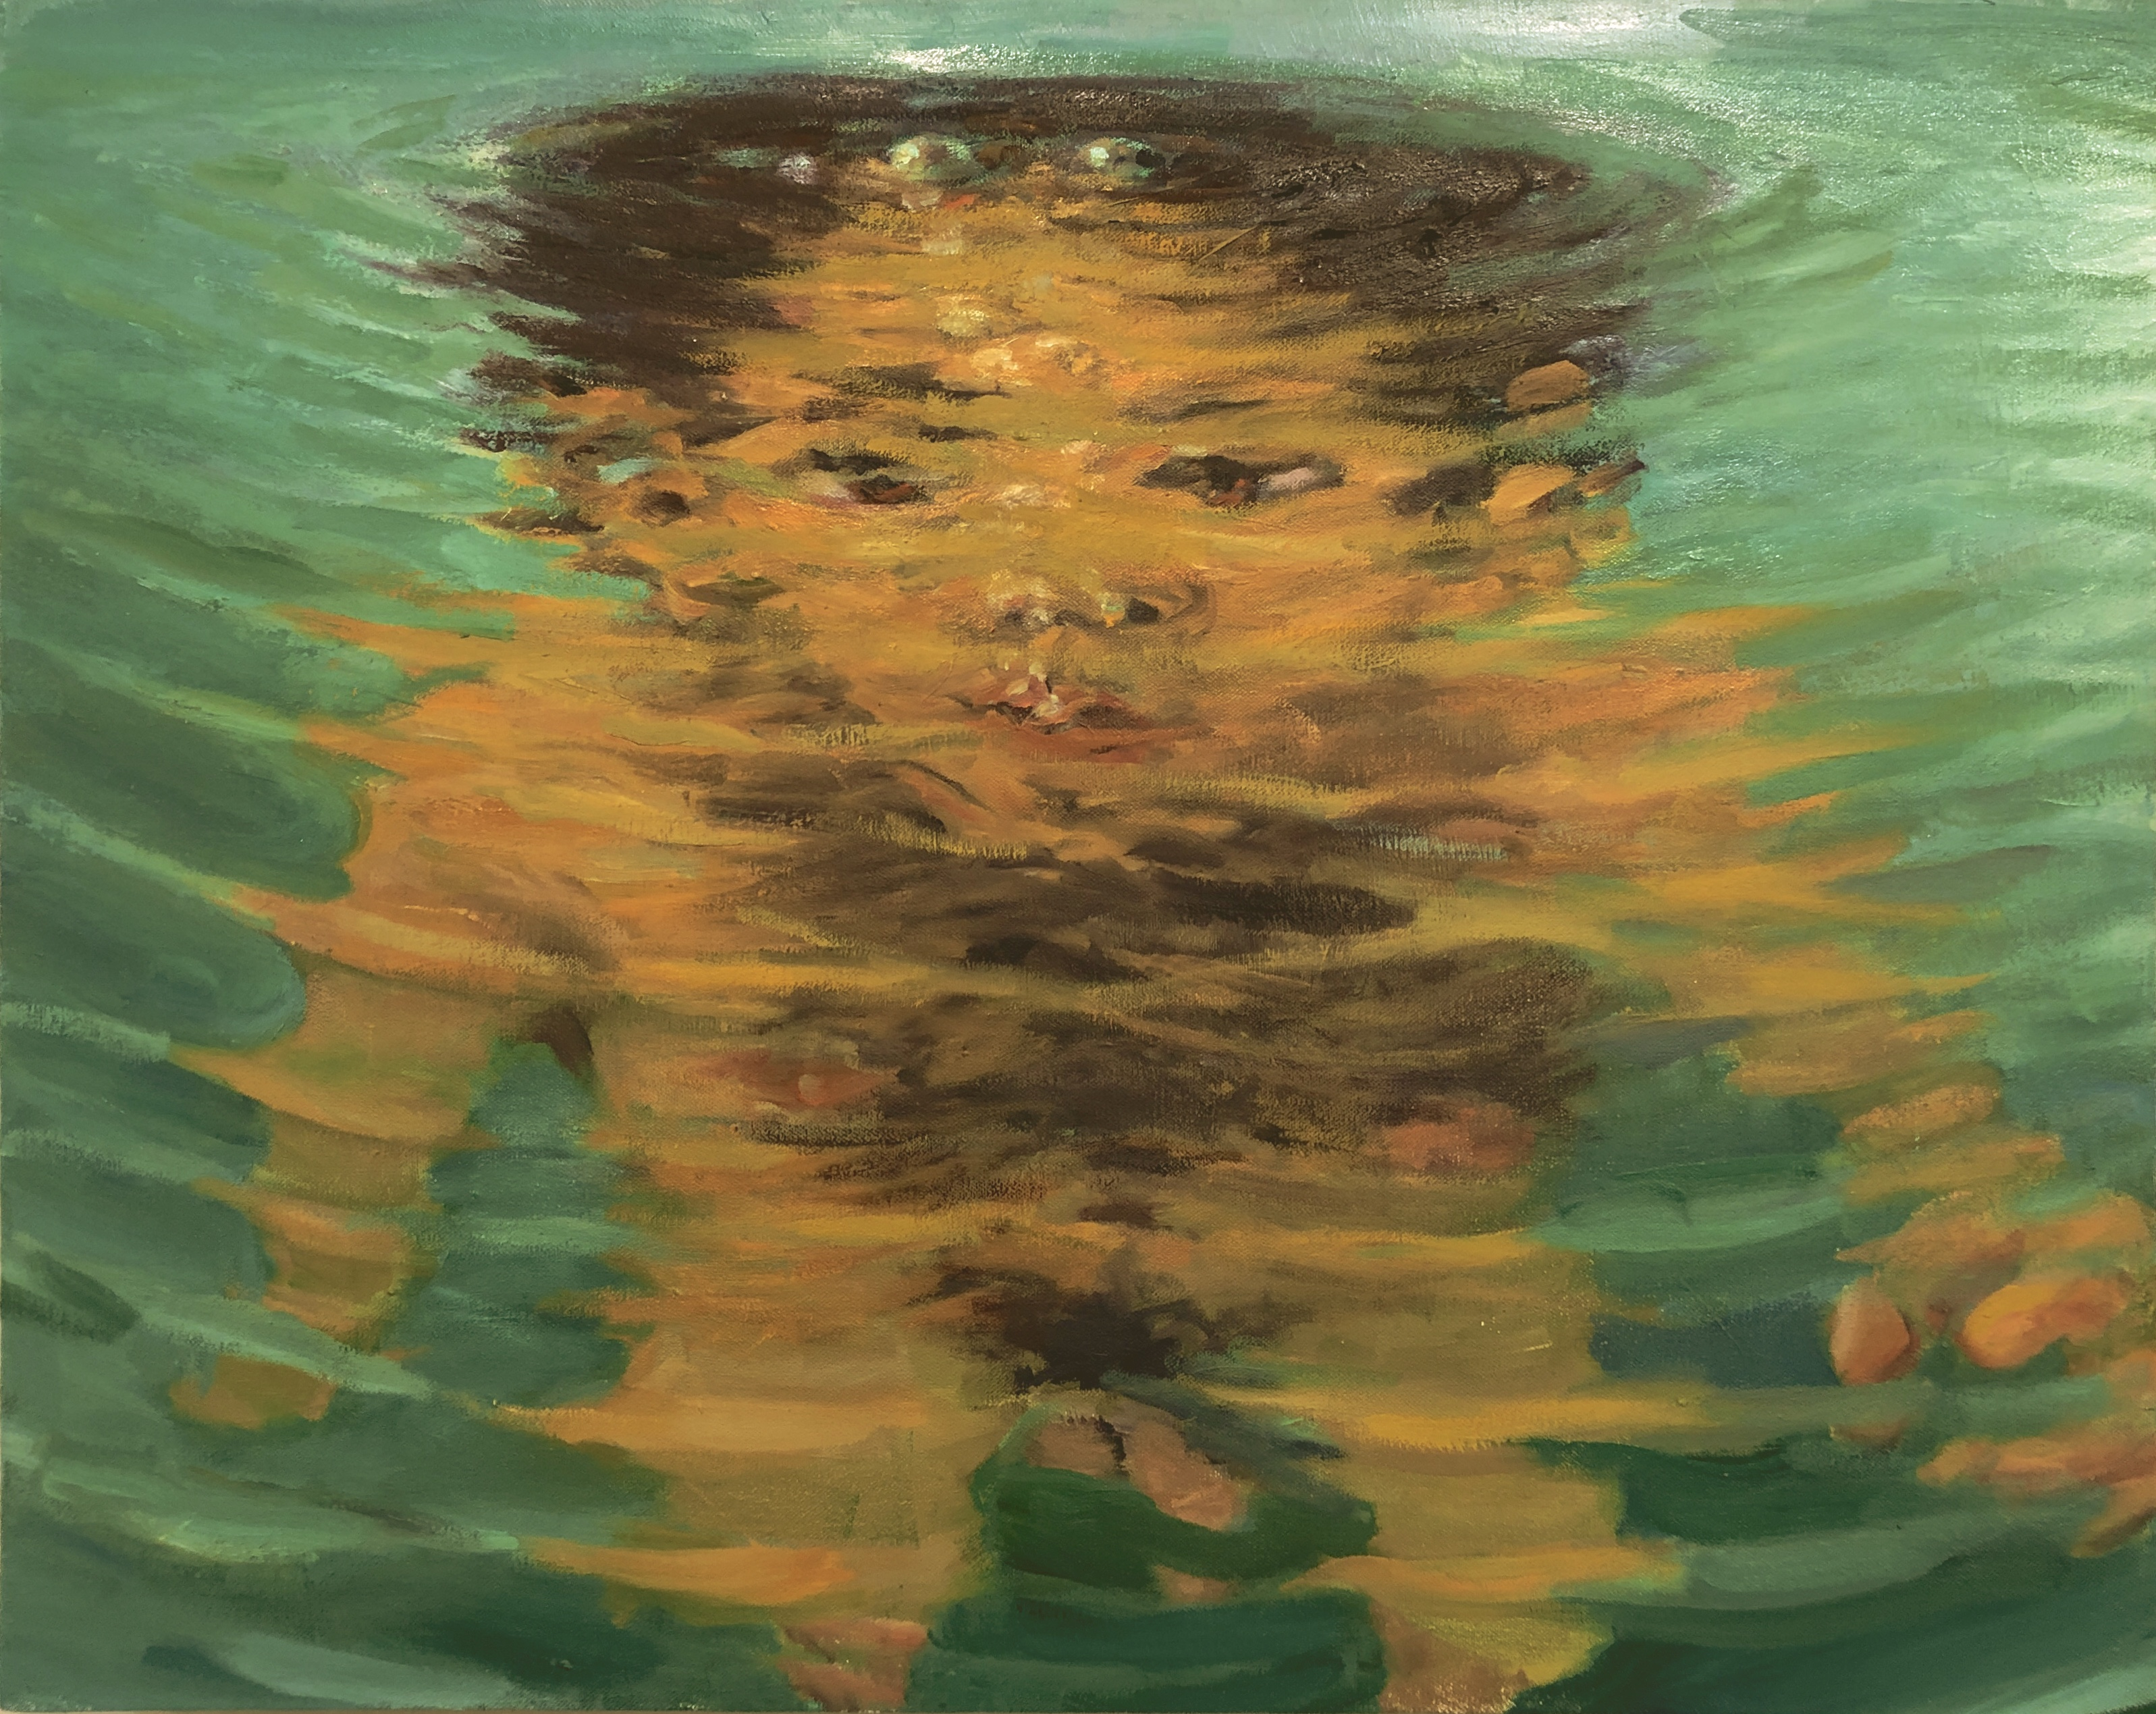 Surface Tension, 2019